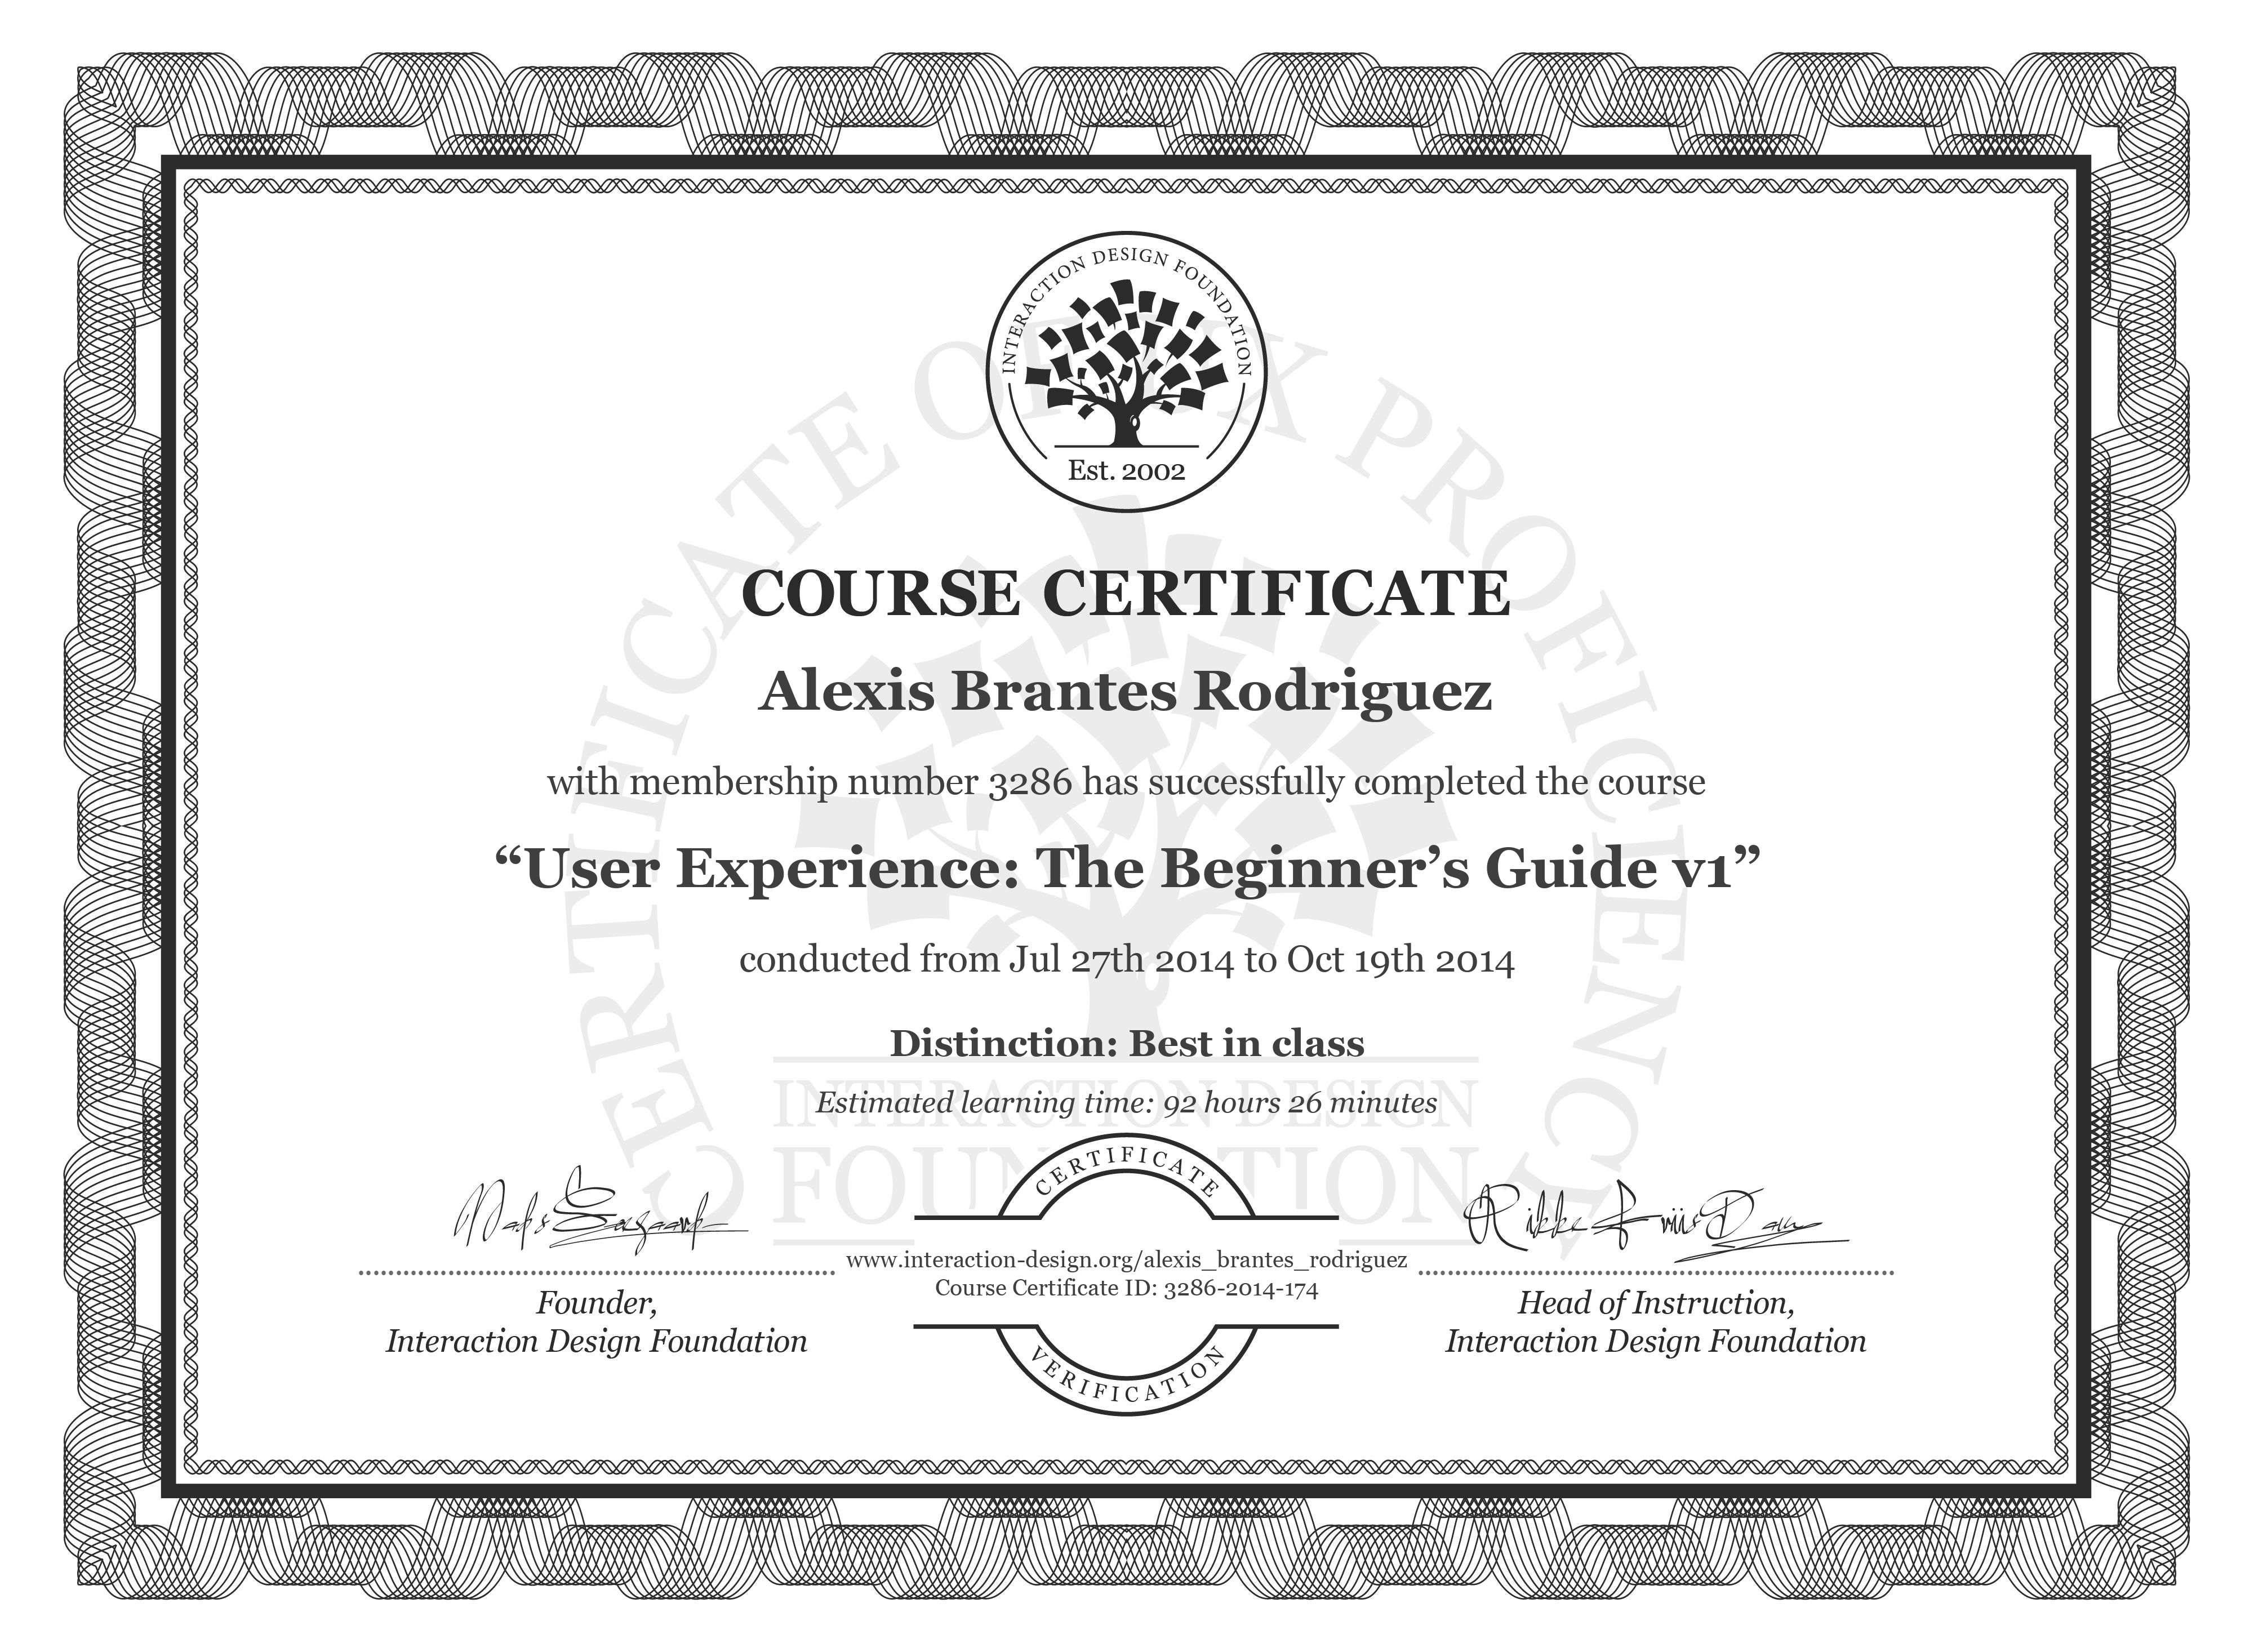 Alexis Brantes Rodriguez's Course Certificate: User Experience: The Beginner's Guide